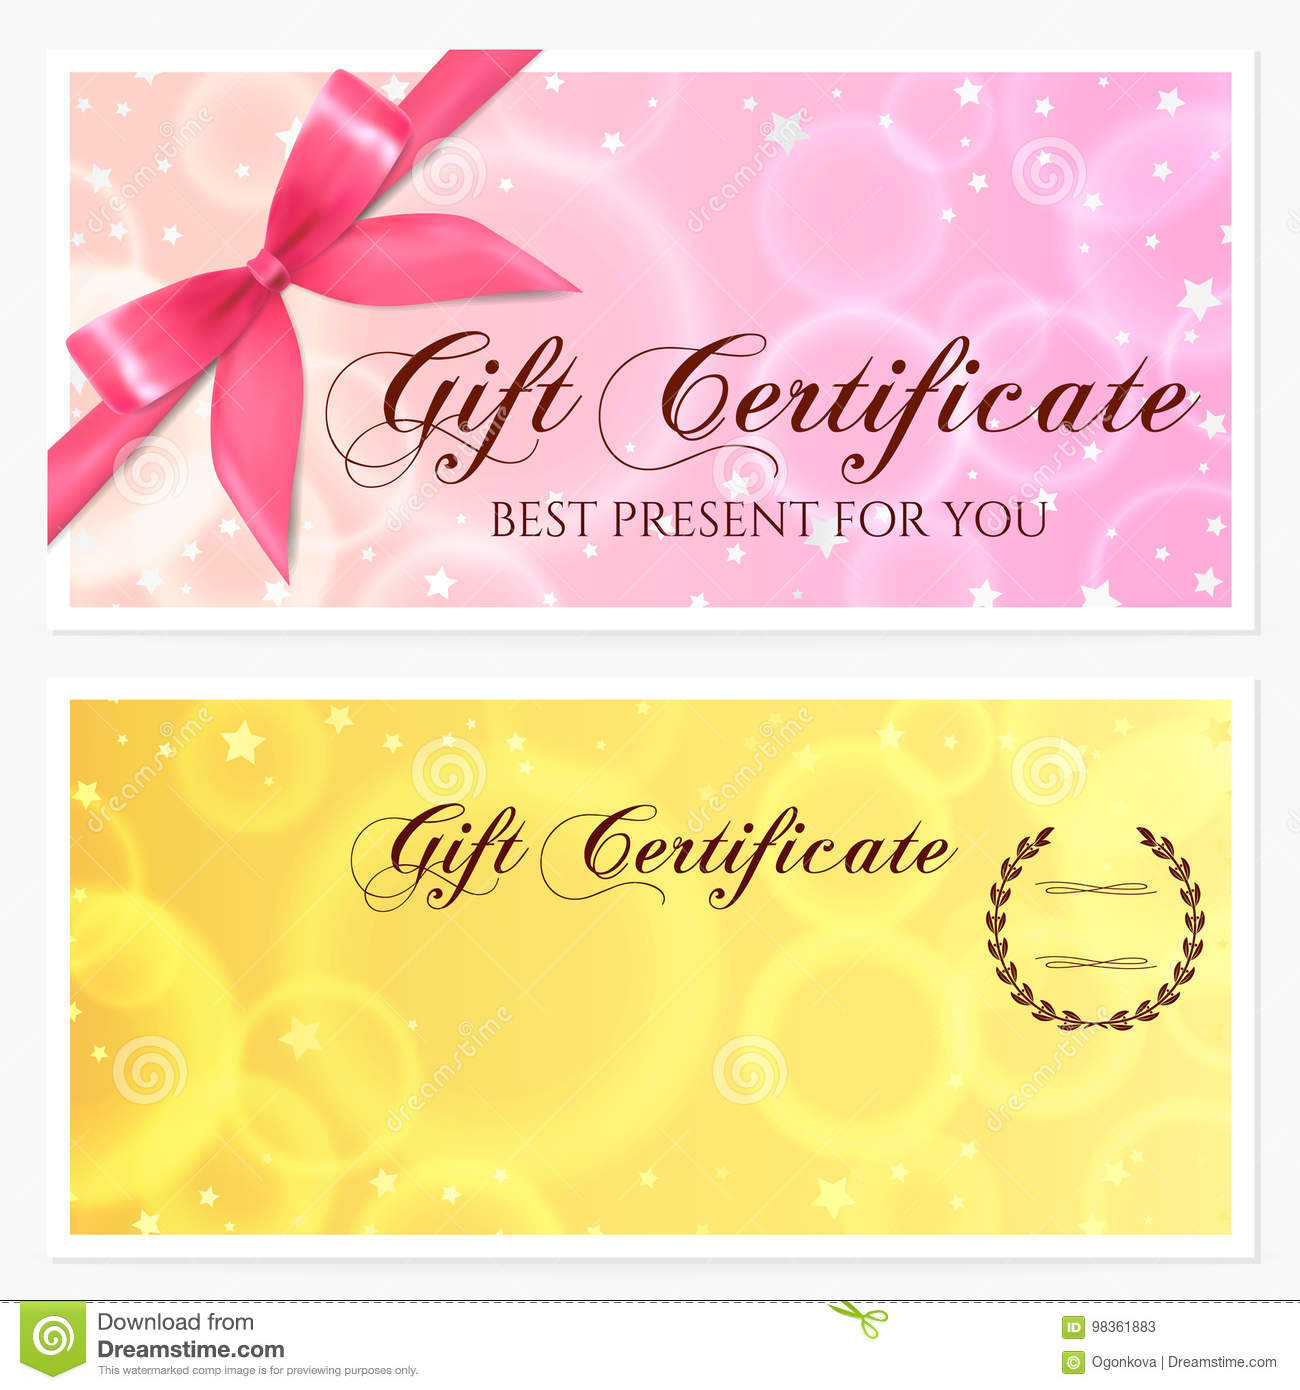 gift certificate voucher coupon gift card template with stars and